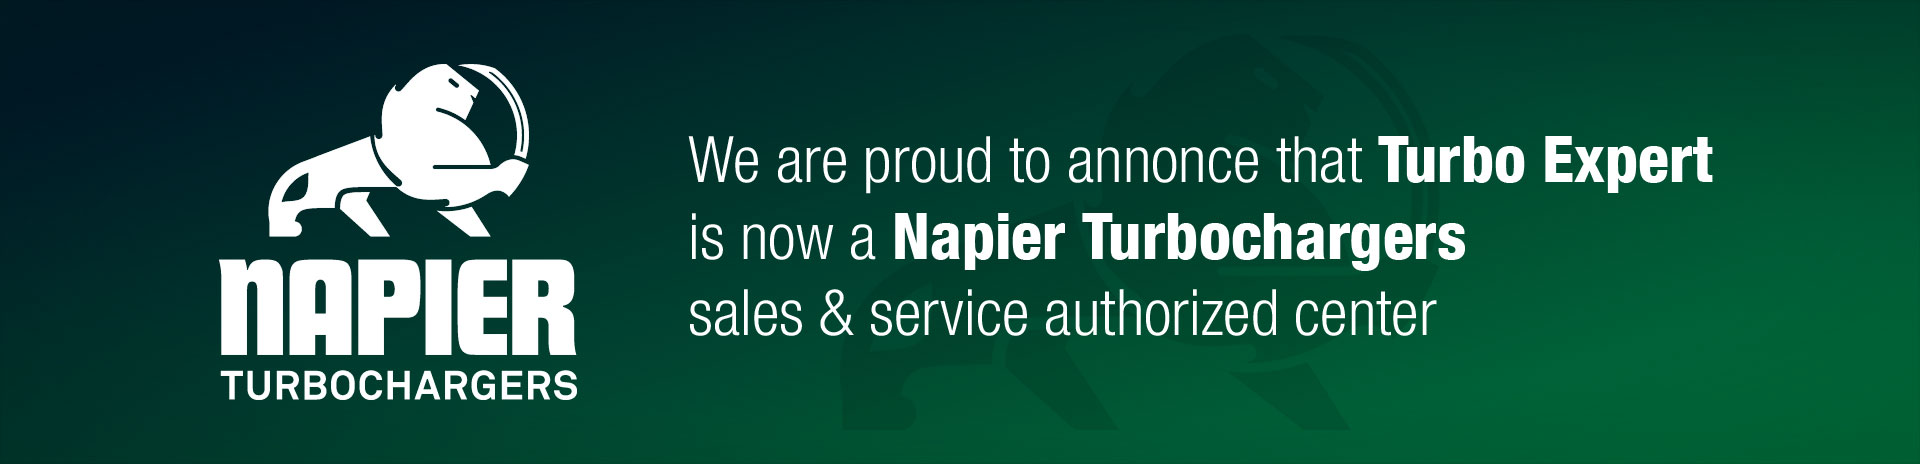 We are proud to annonce that Turbo Expert is now a Napier Turbochargers sales & service authorized center